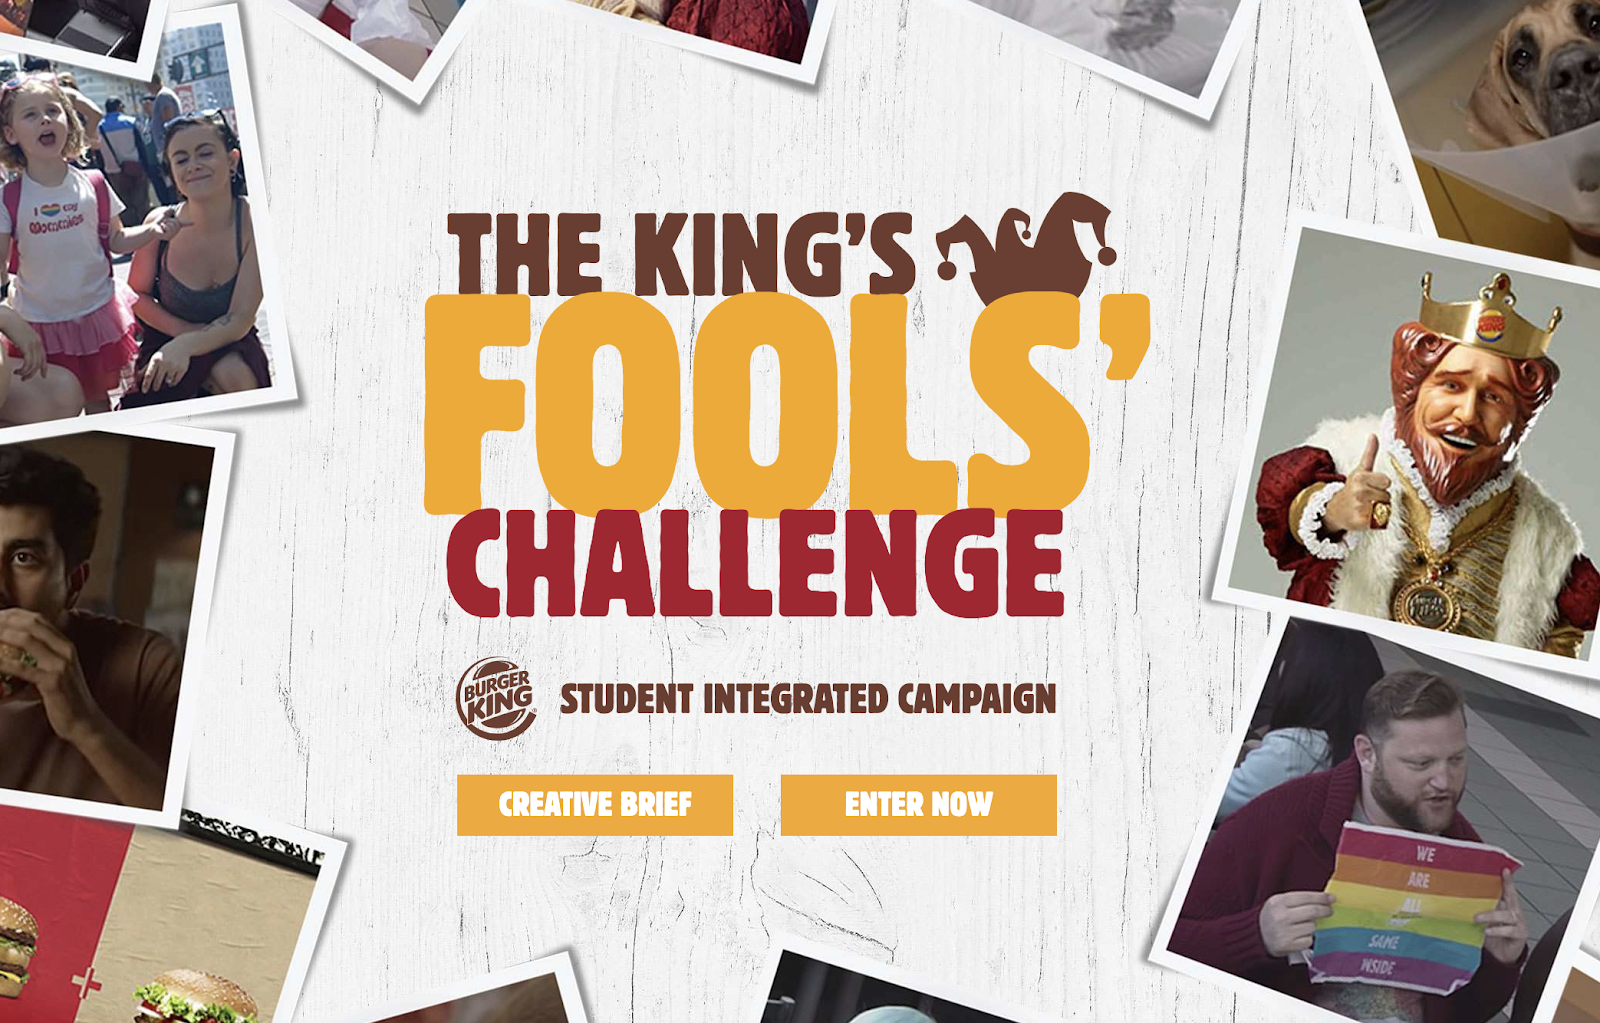 Burger King: The King's Fool's Challenge